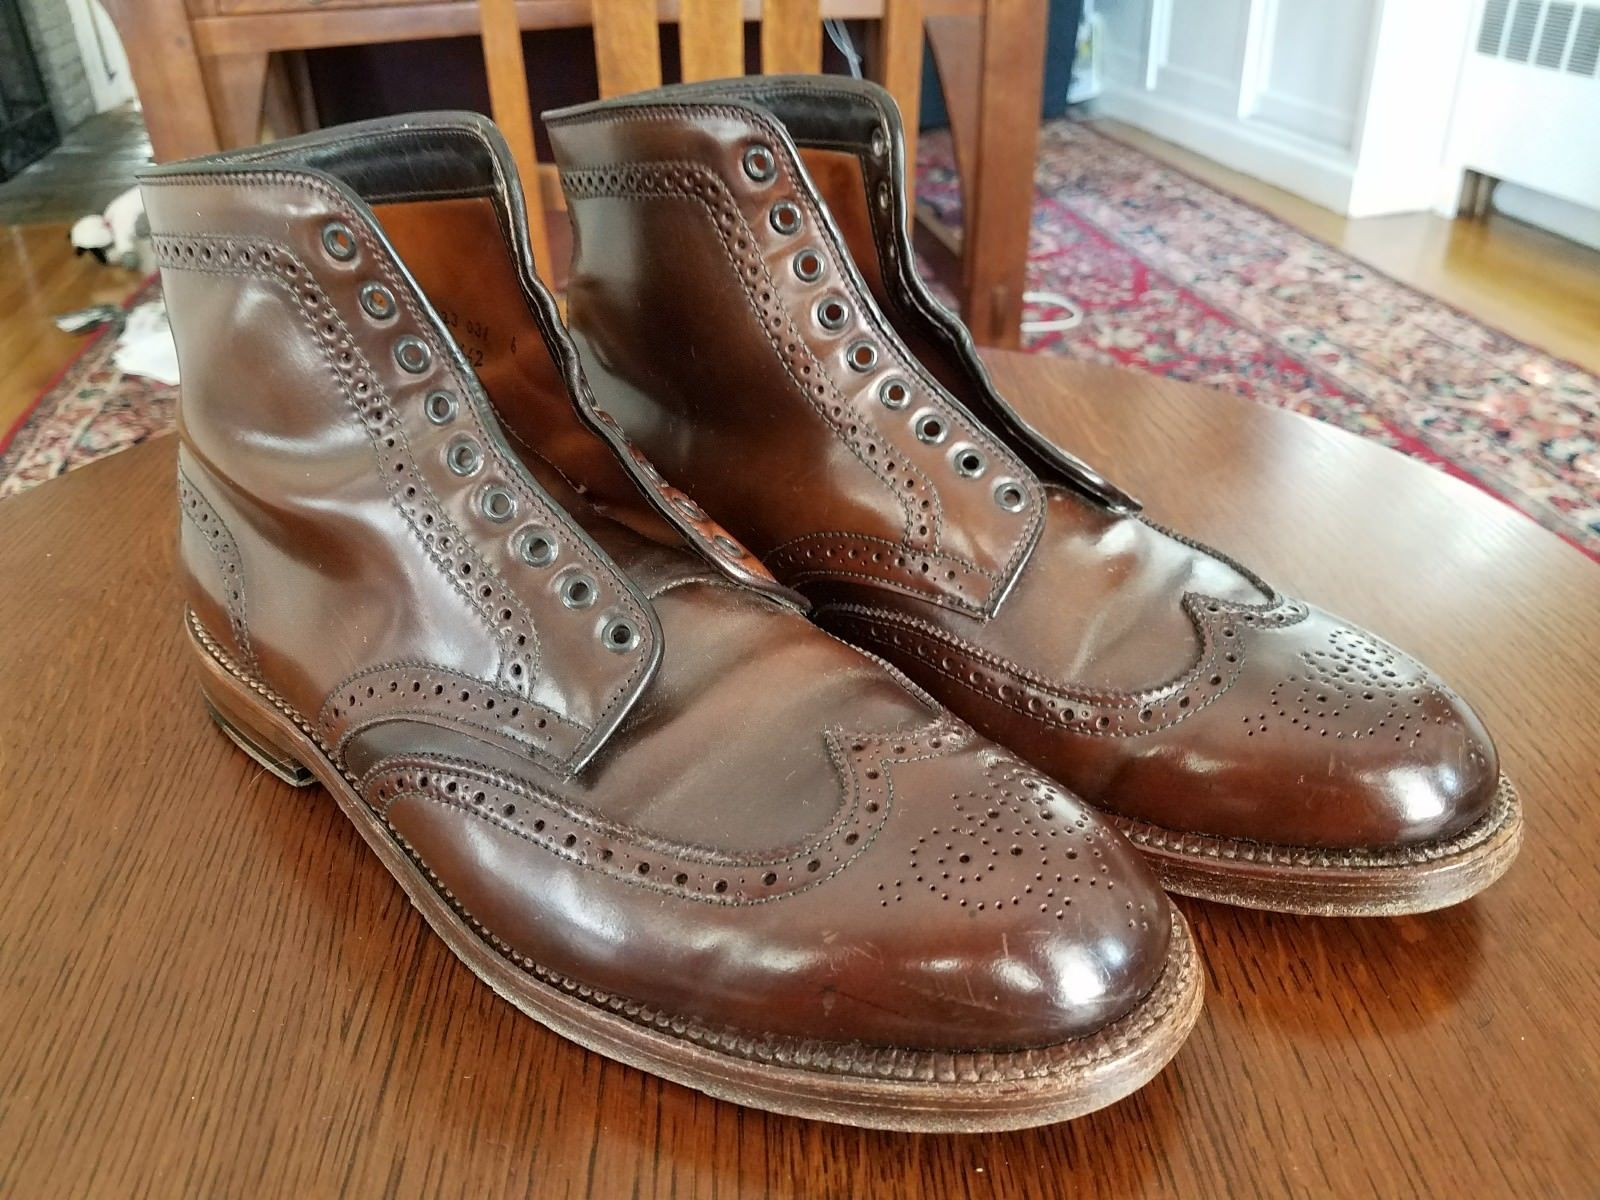 Alden cigar cordovan Wing tip (SWB) Brixton boots Barrie last